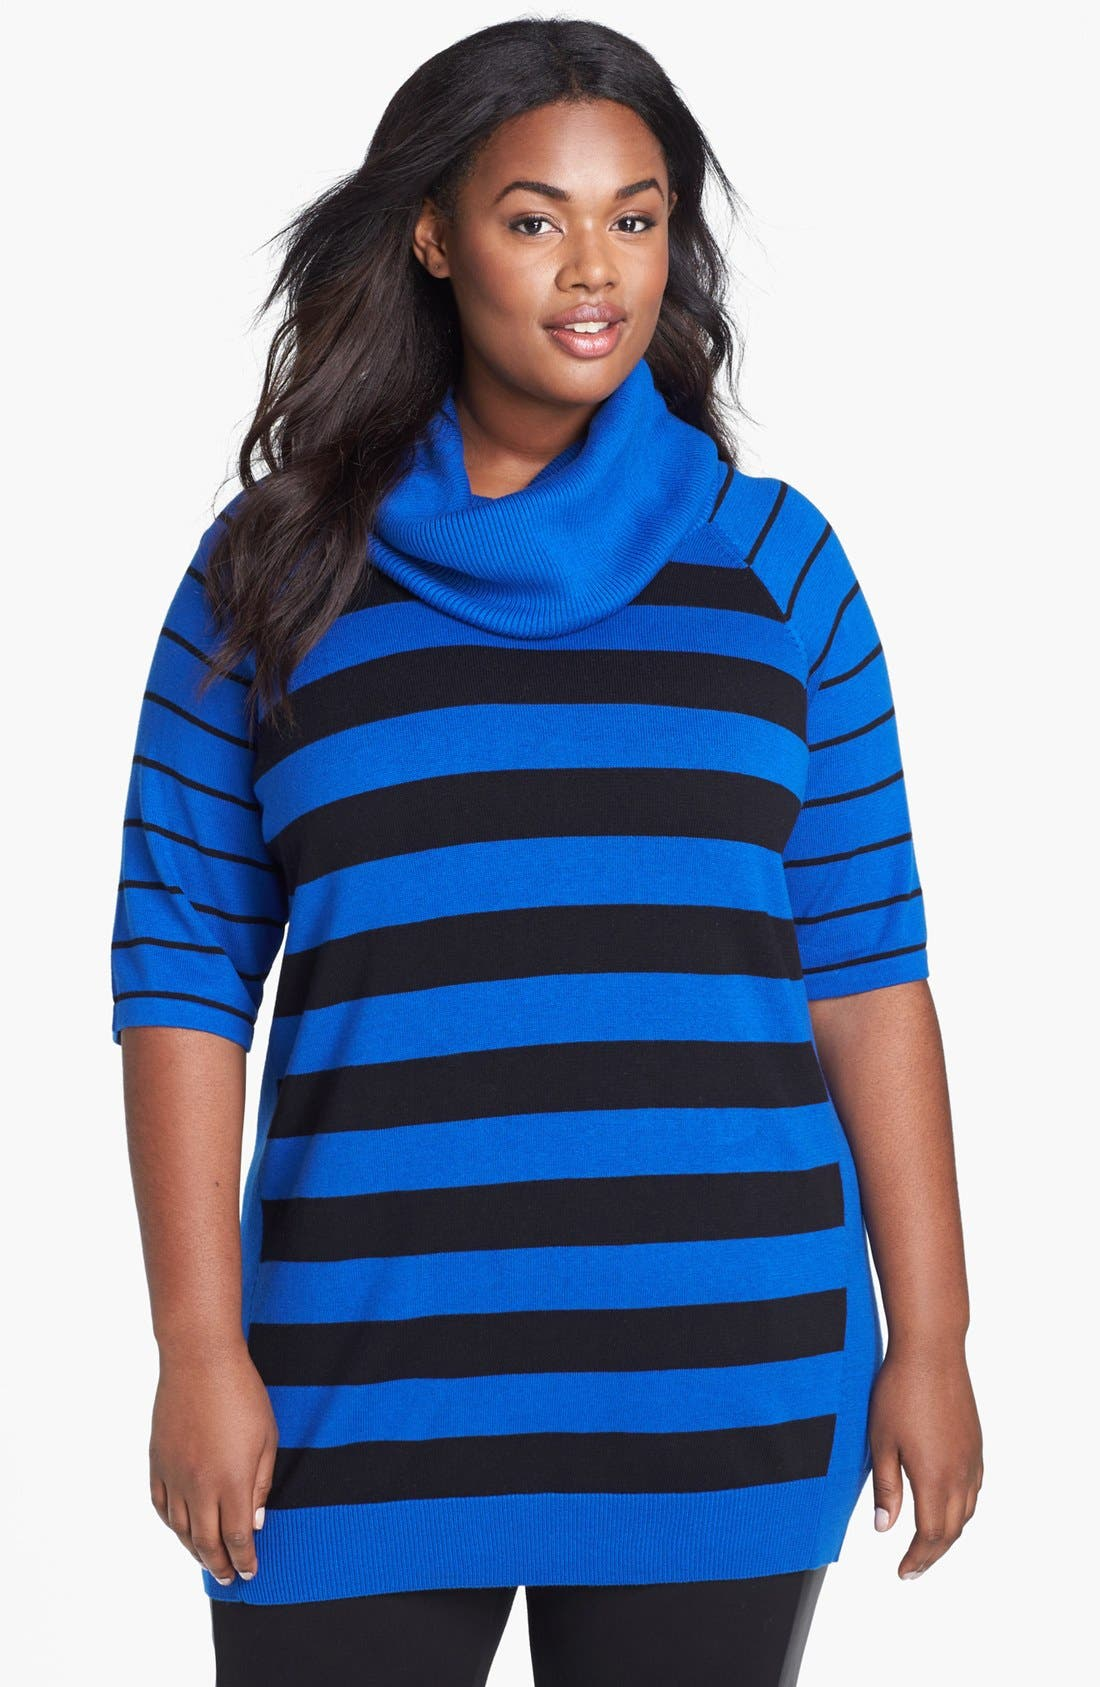 Main Image - Vince Camuto Stripe Cowl Neck Sweater (Plus Size)